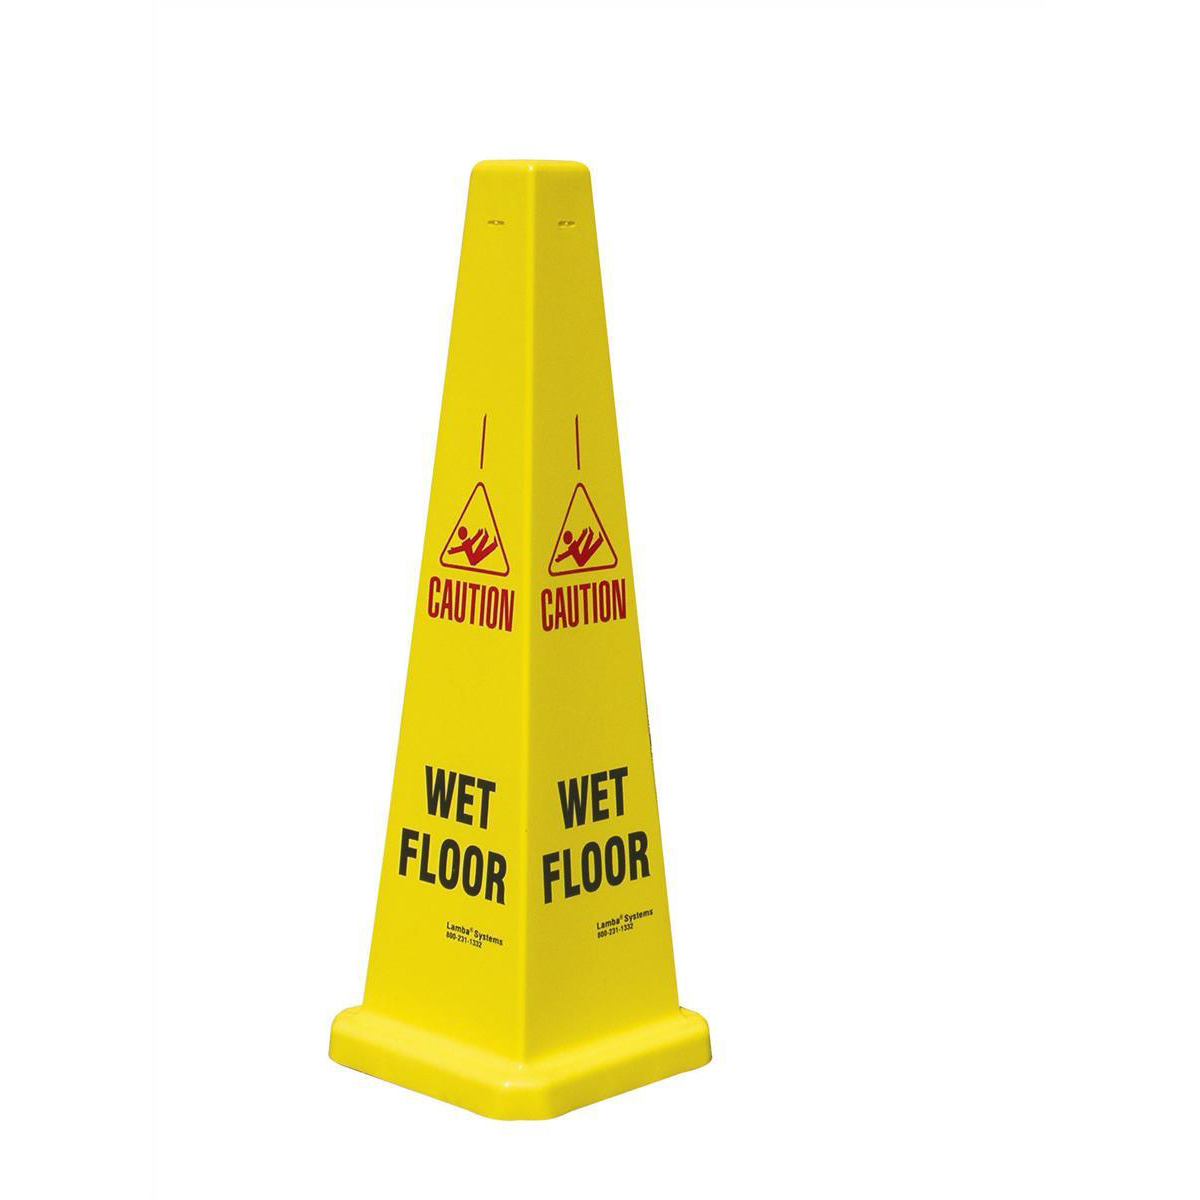 Image for Collector Caution Cone for Wet Floors Stackable Height 900mm Ref JCP121-200-200